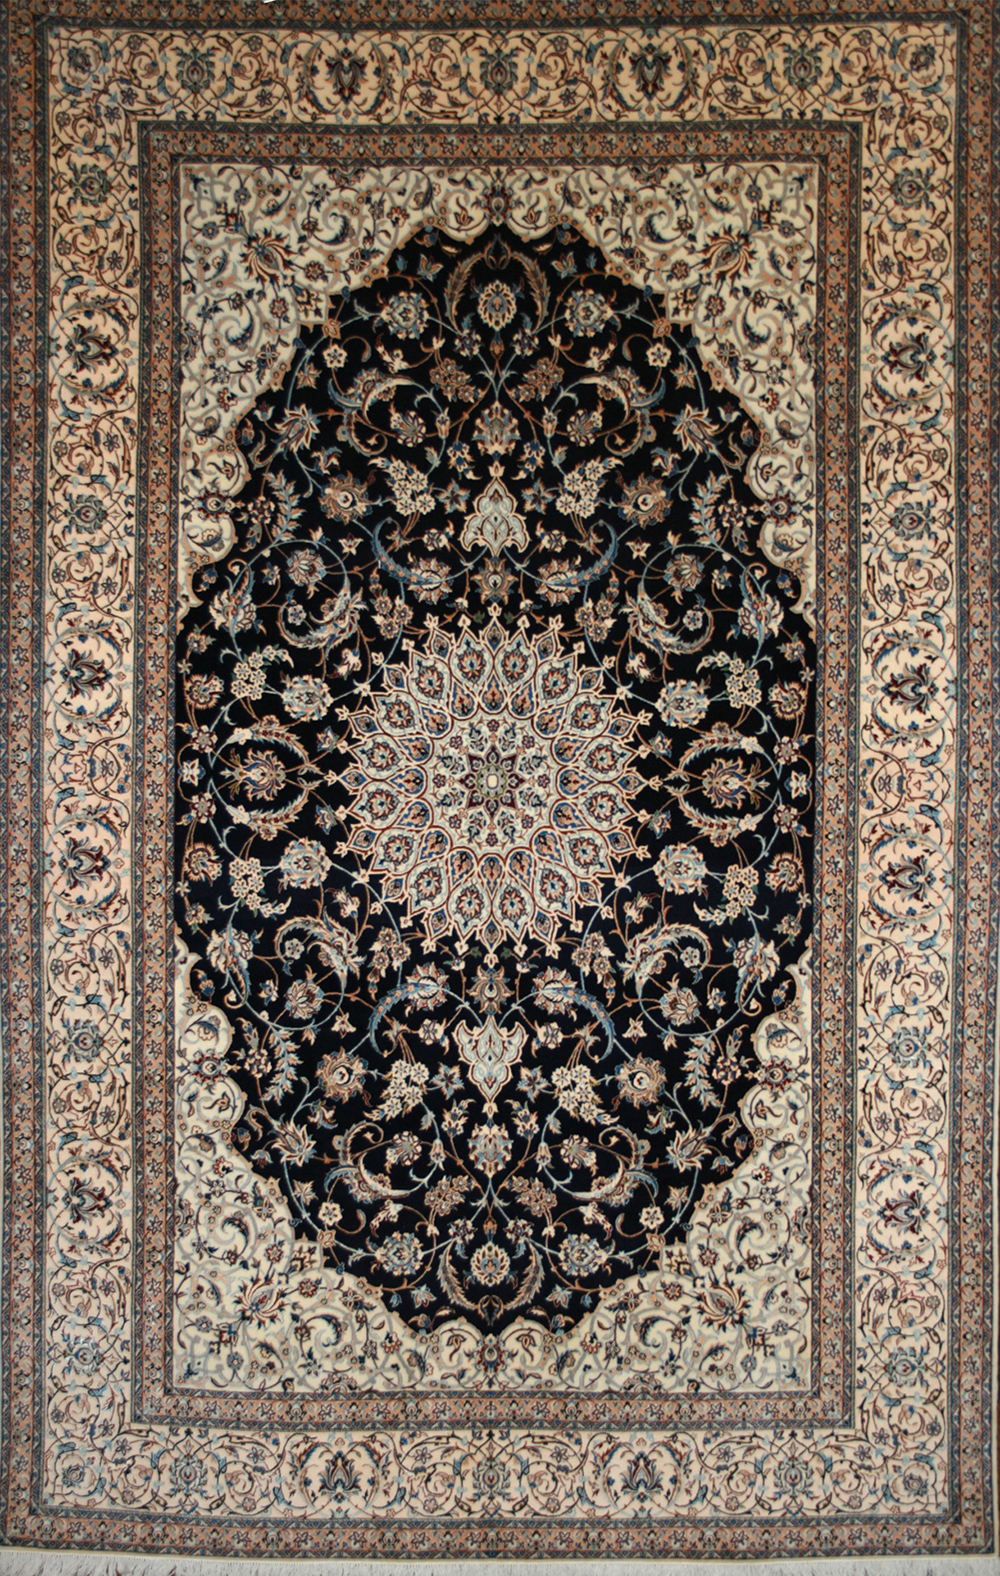 Beautiful Nain rug with silk detail